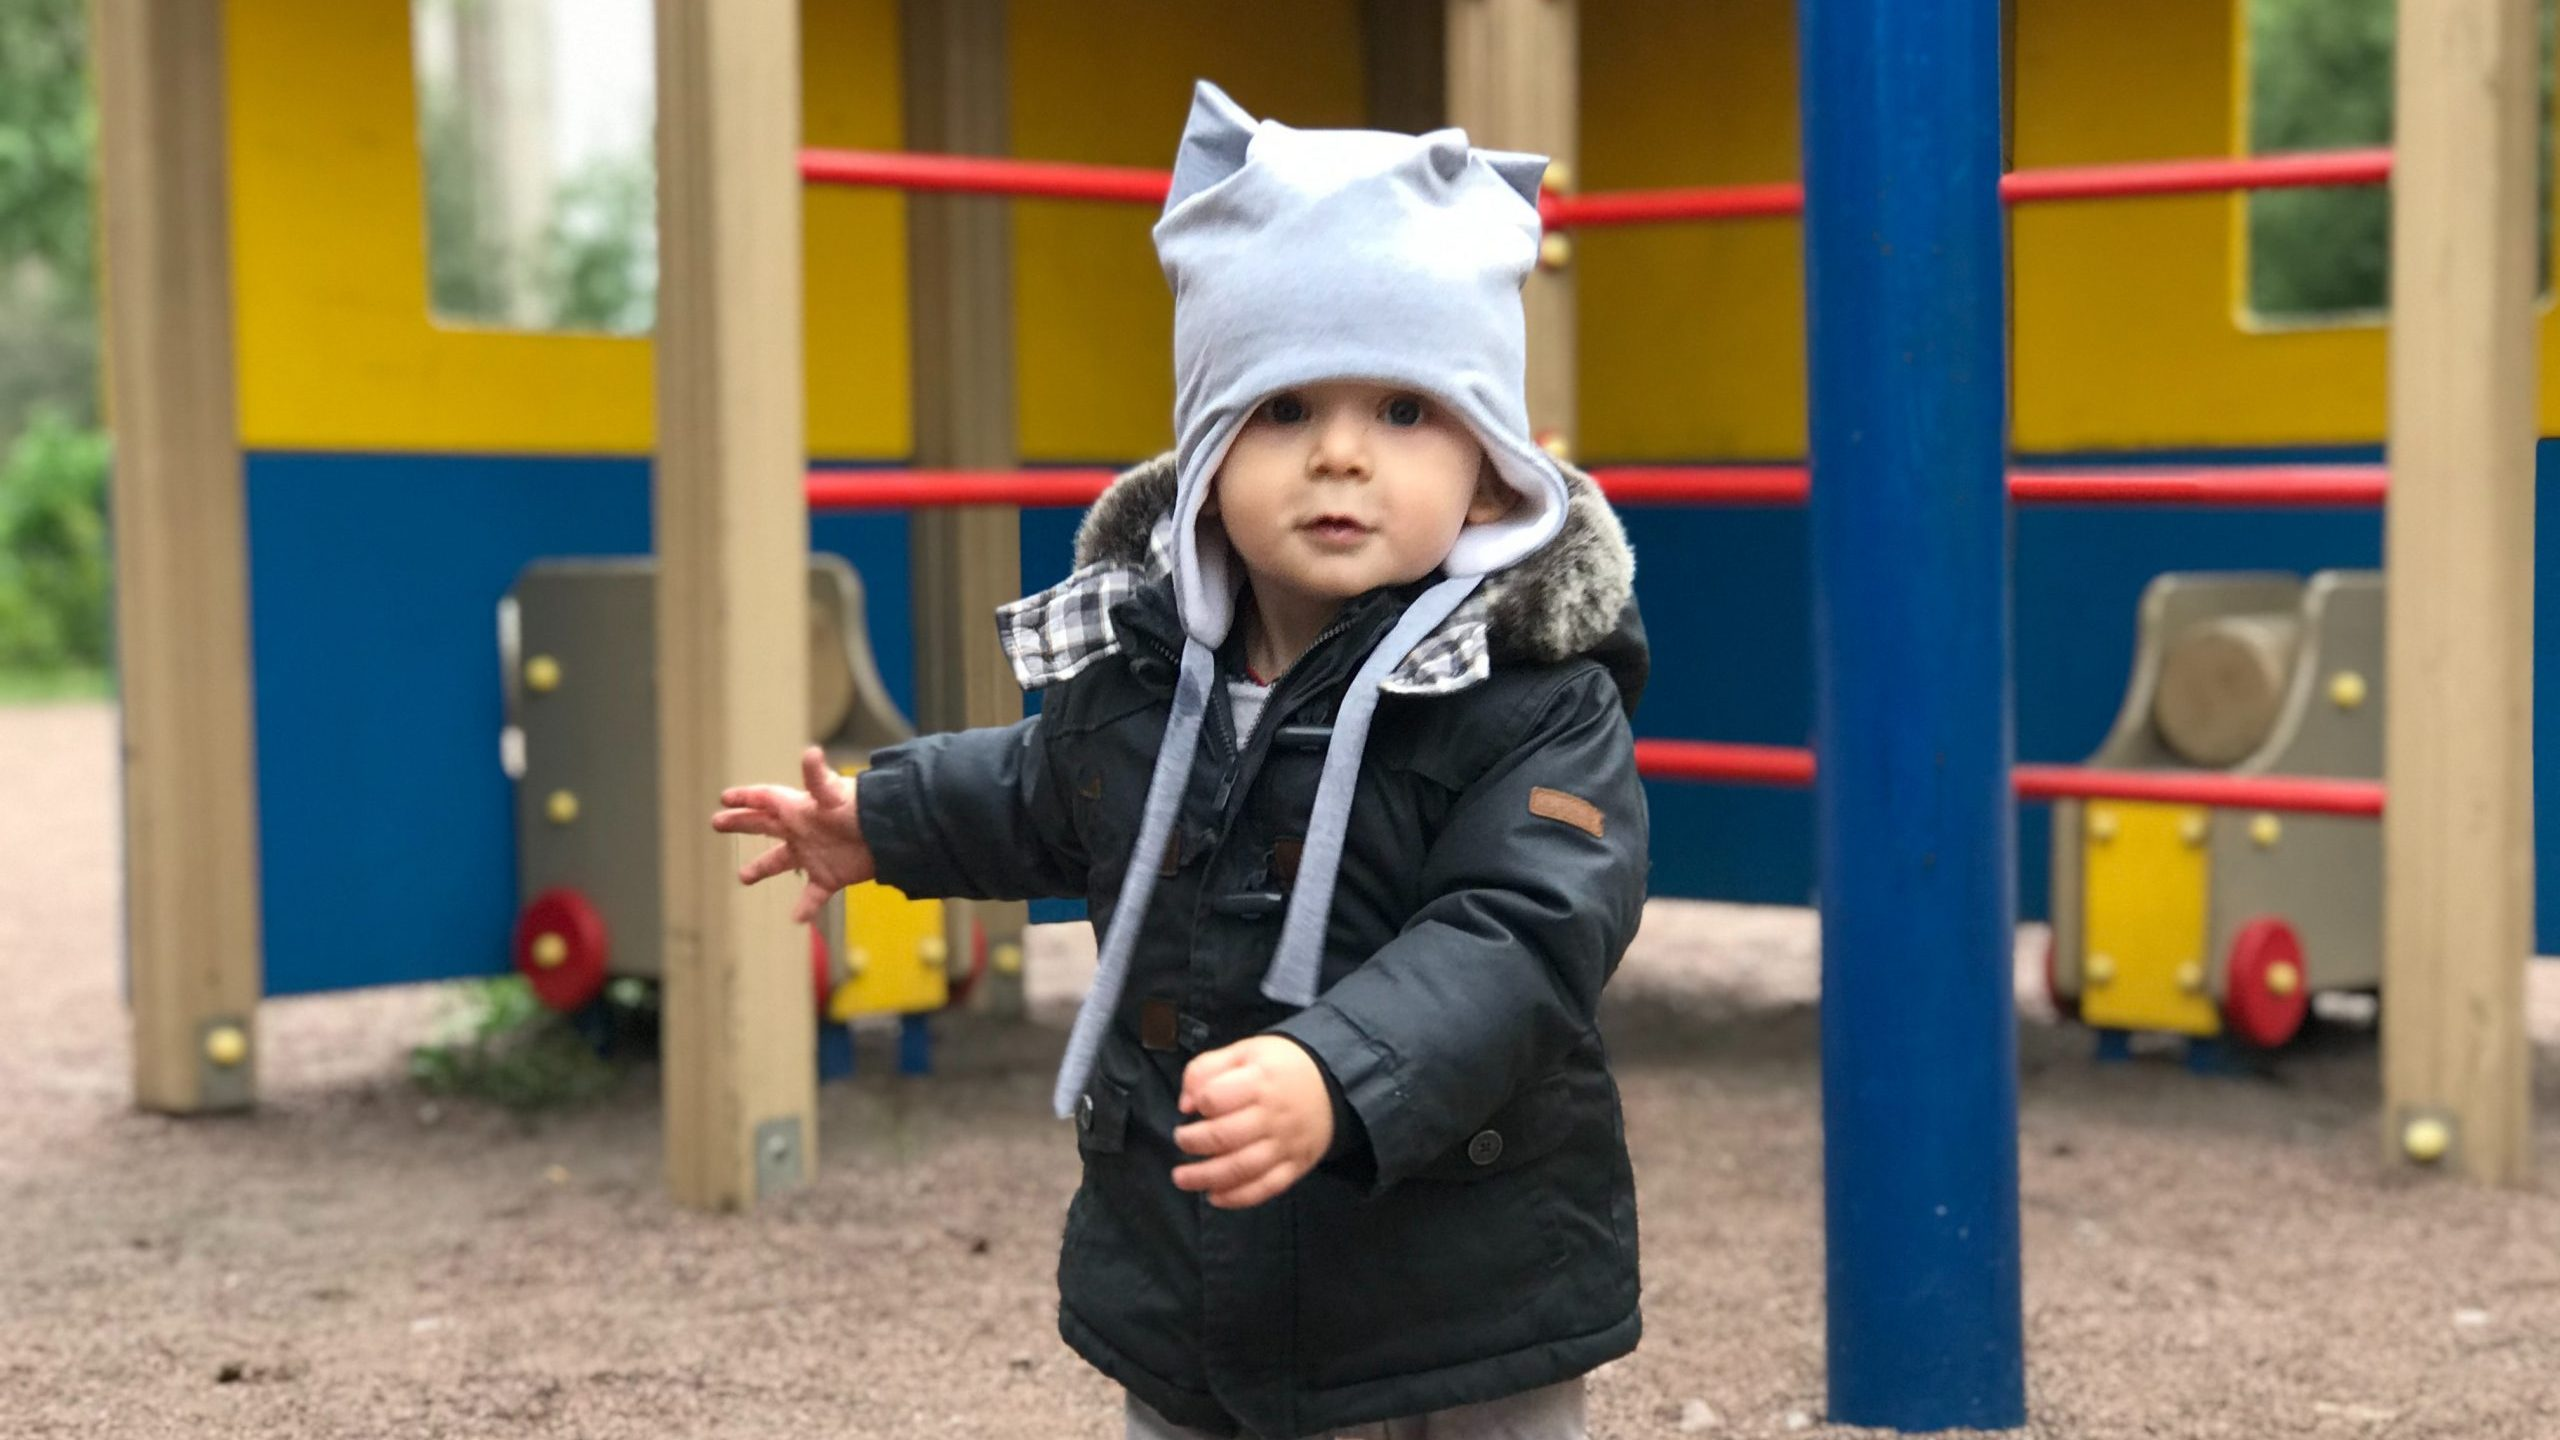 child in black jacket and white cap standing near yellow blue and red playground during daytime